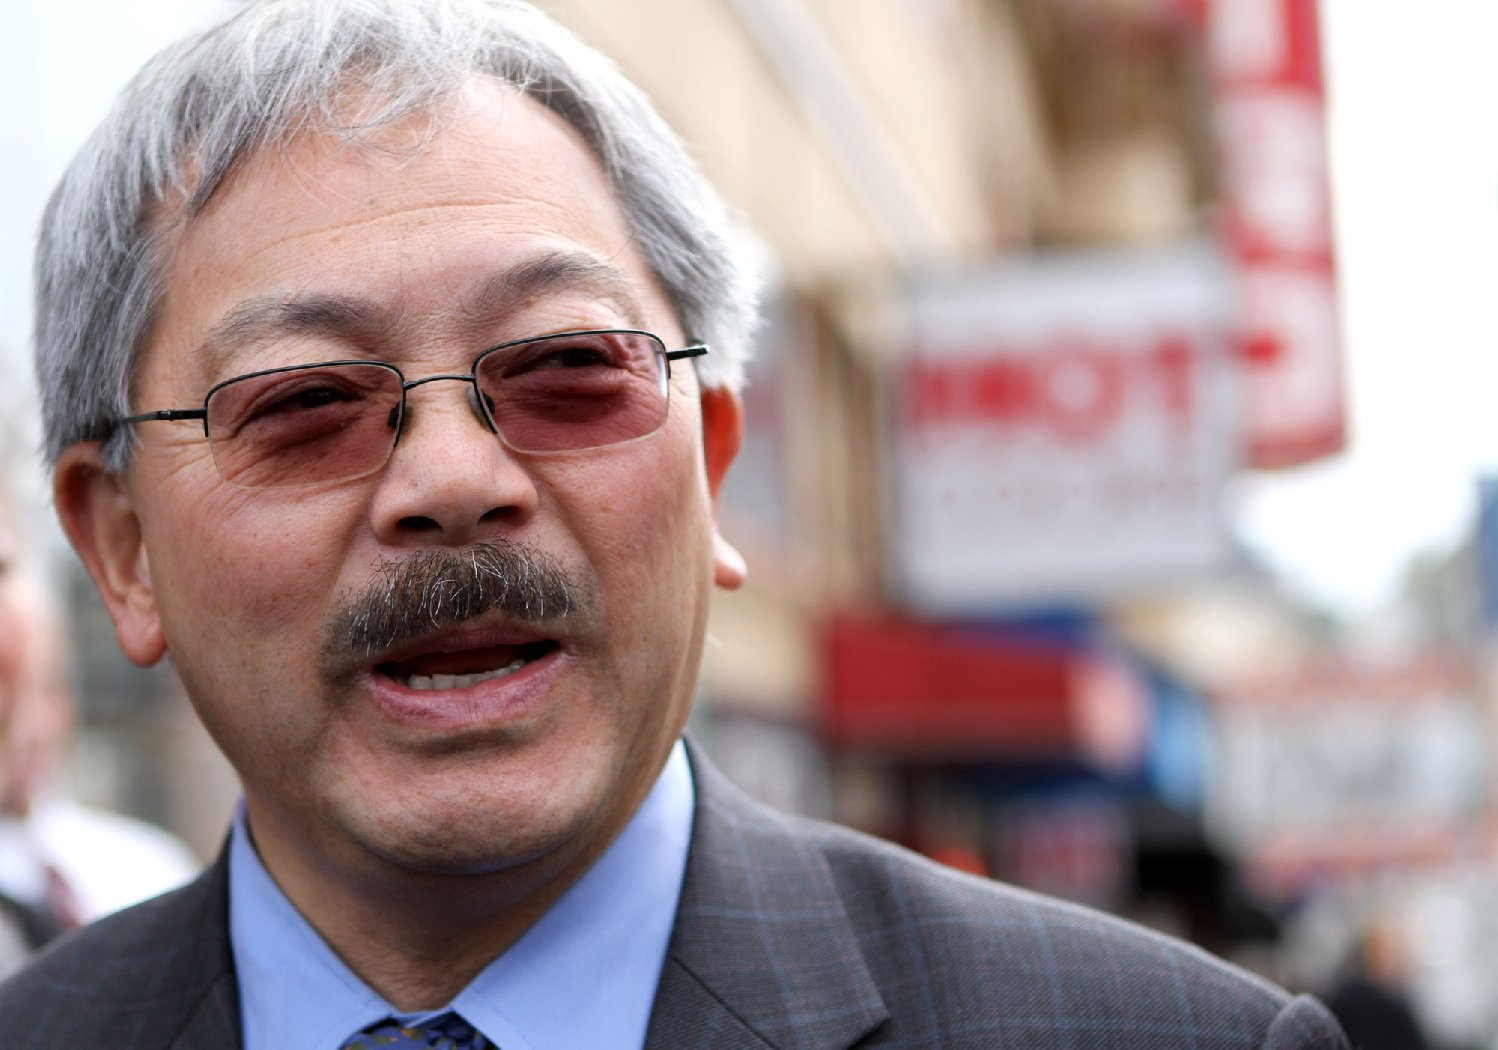 Ed Lee on 'Forum': Tech Workers Have the Same Issues as Everyone Else